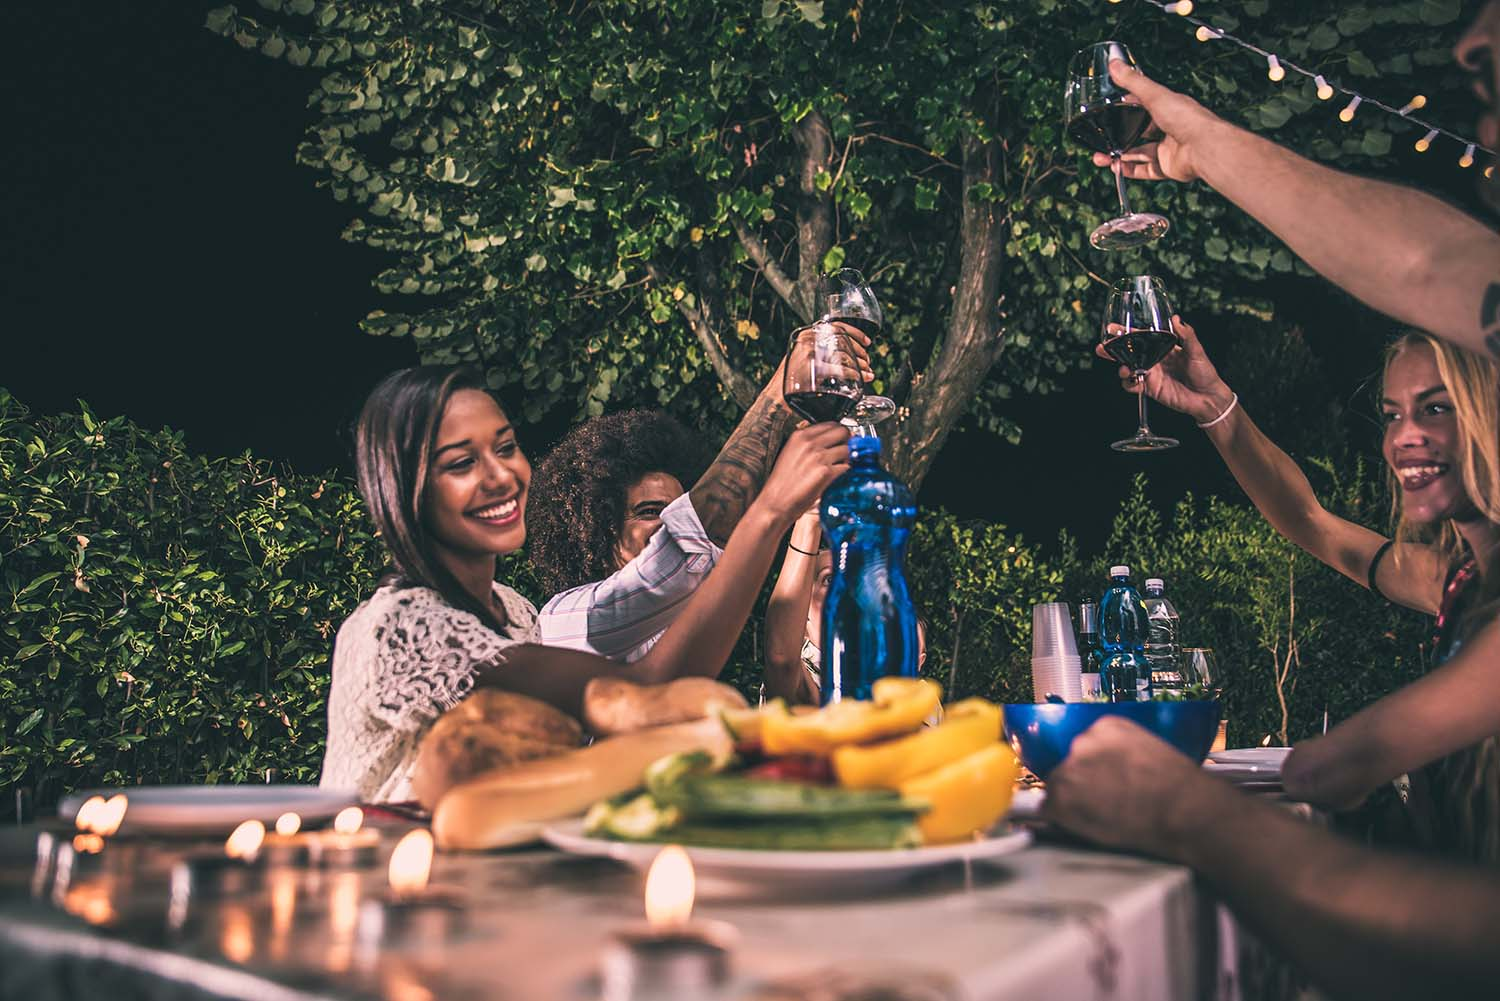 5 Simple Steps to Prepare for a Backyard Party? - Steel Campfire